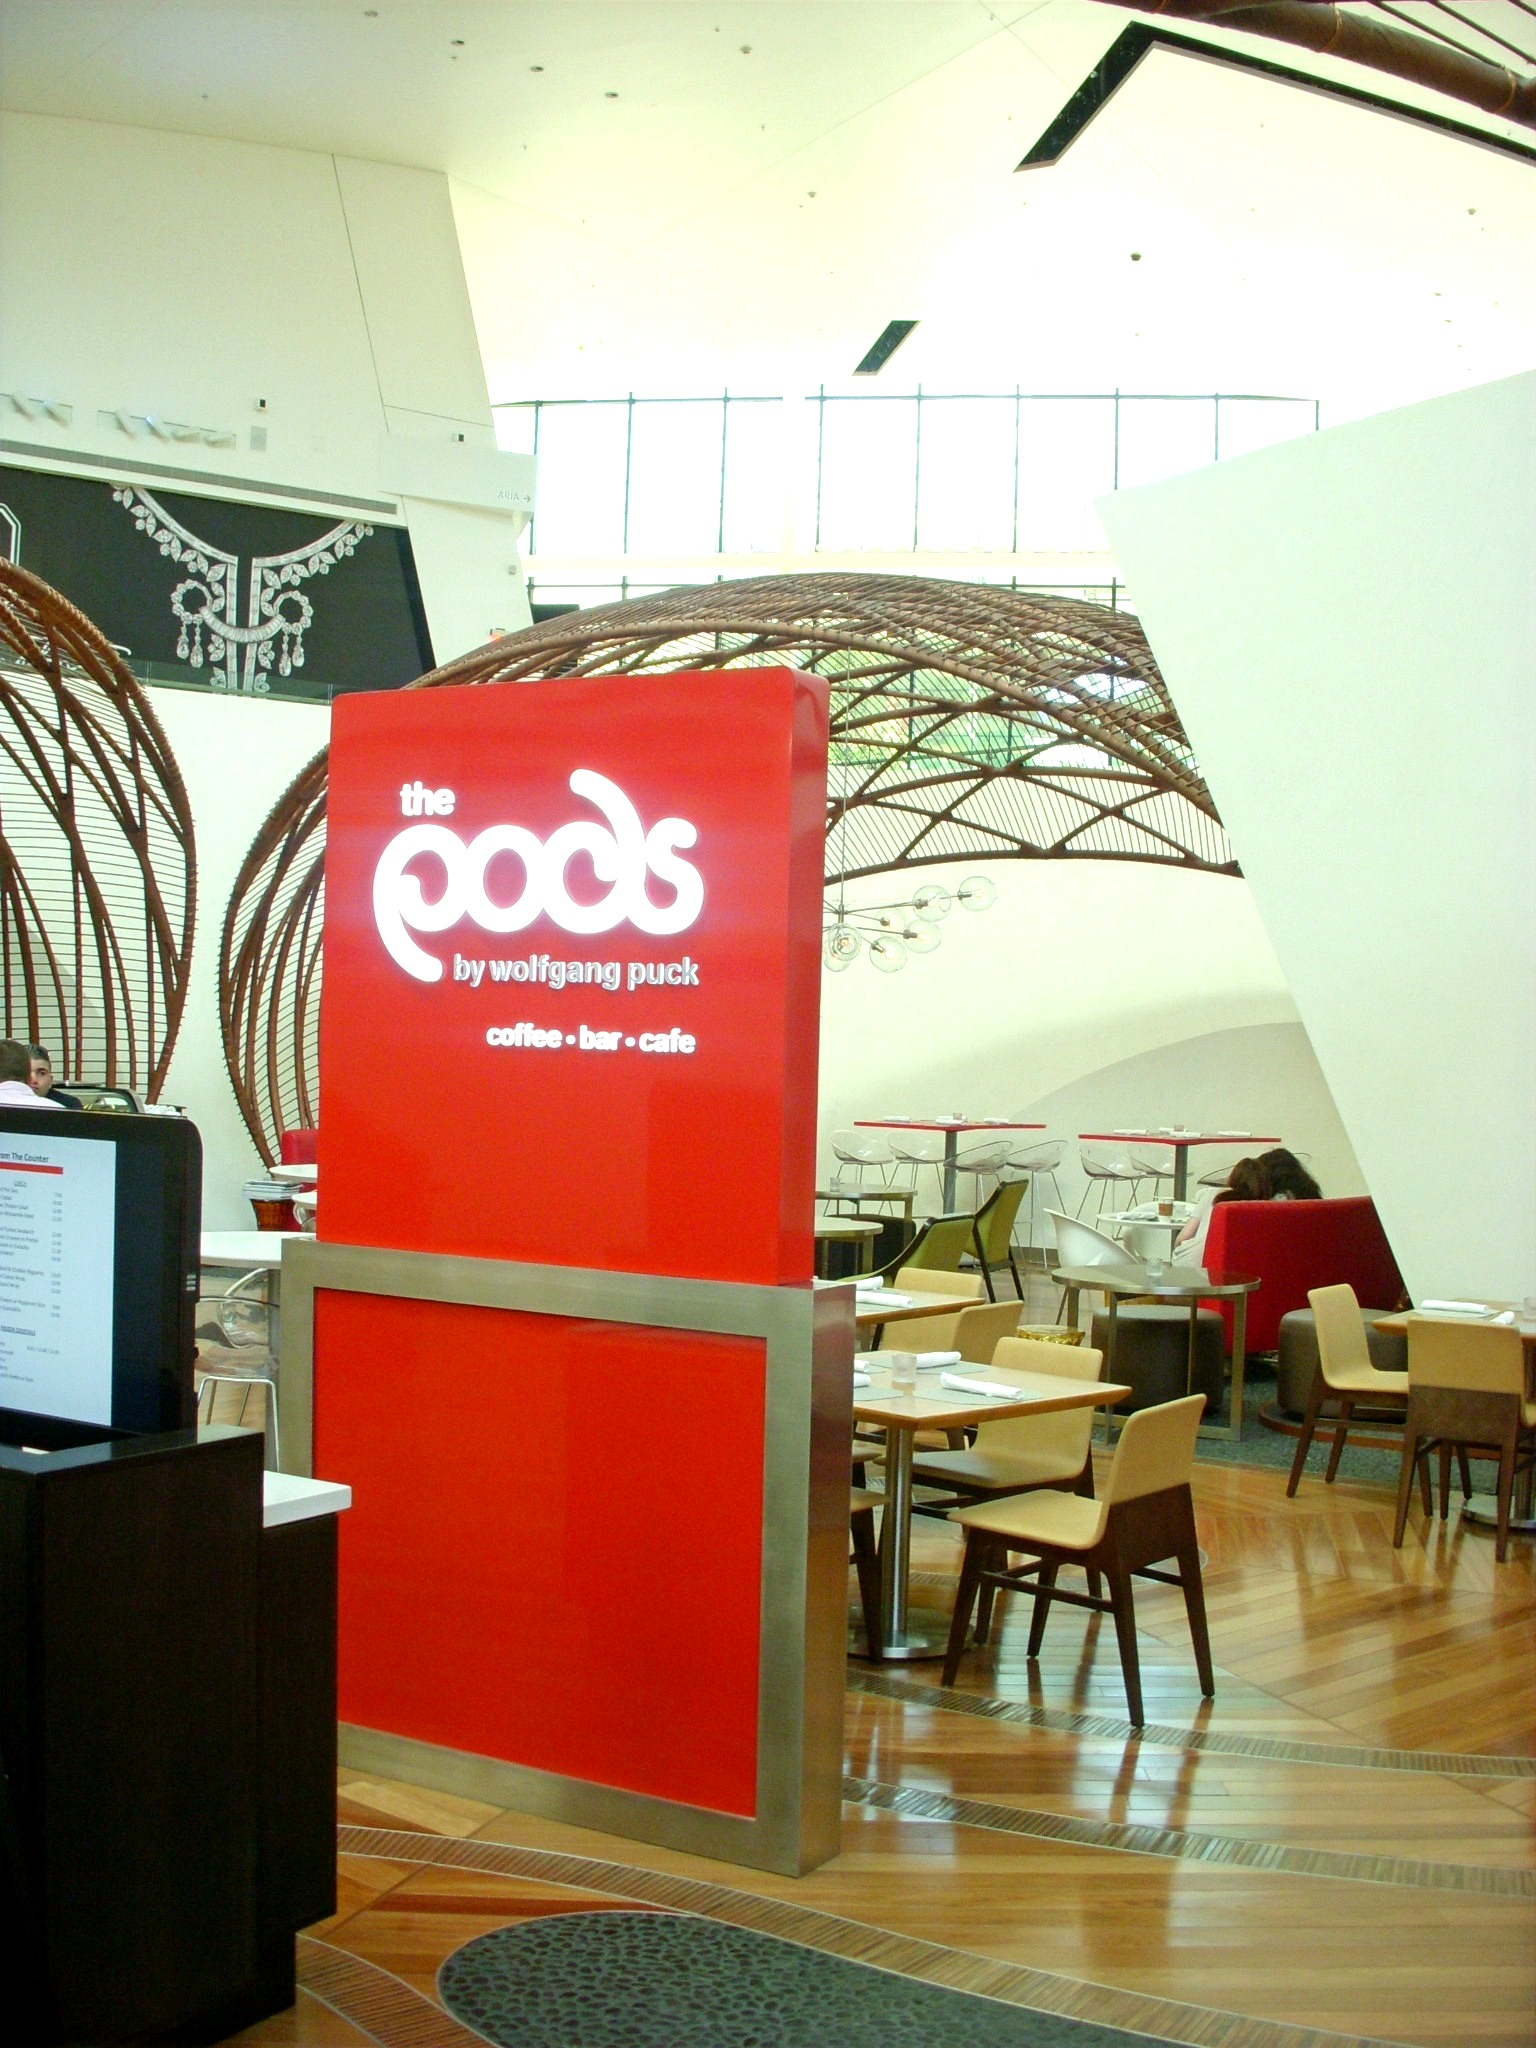 The Pods By Wolfgang Puck